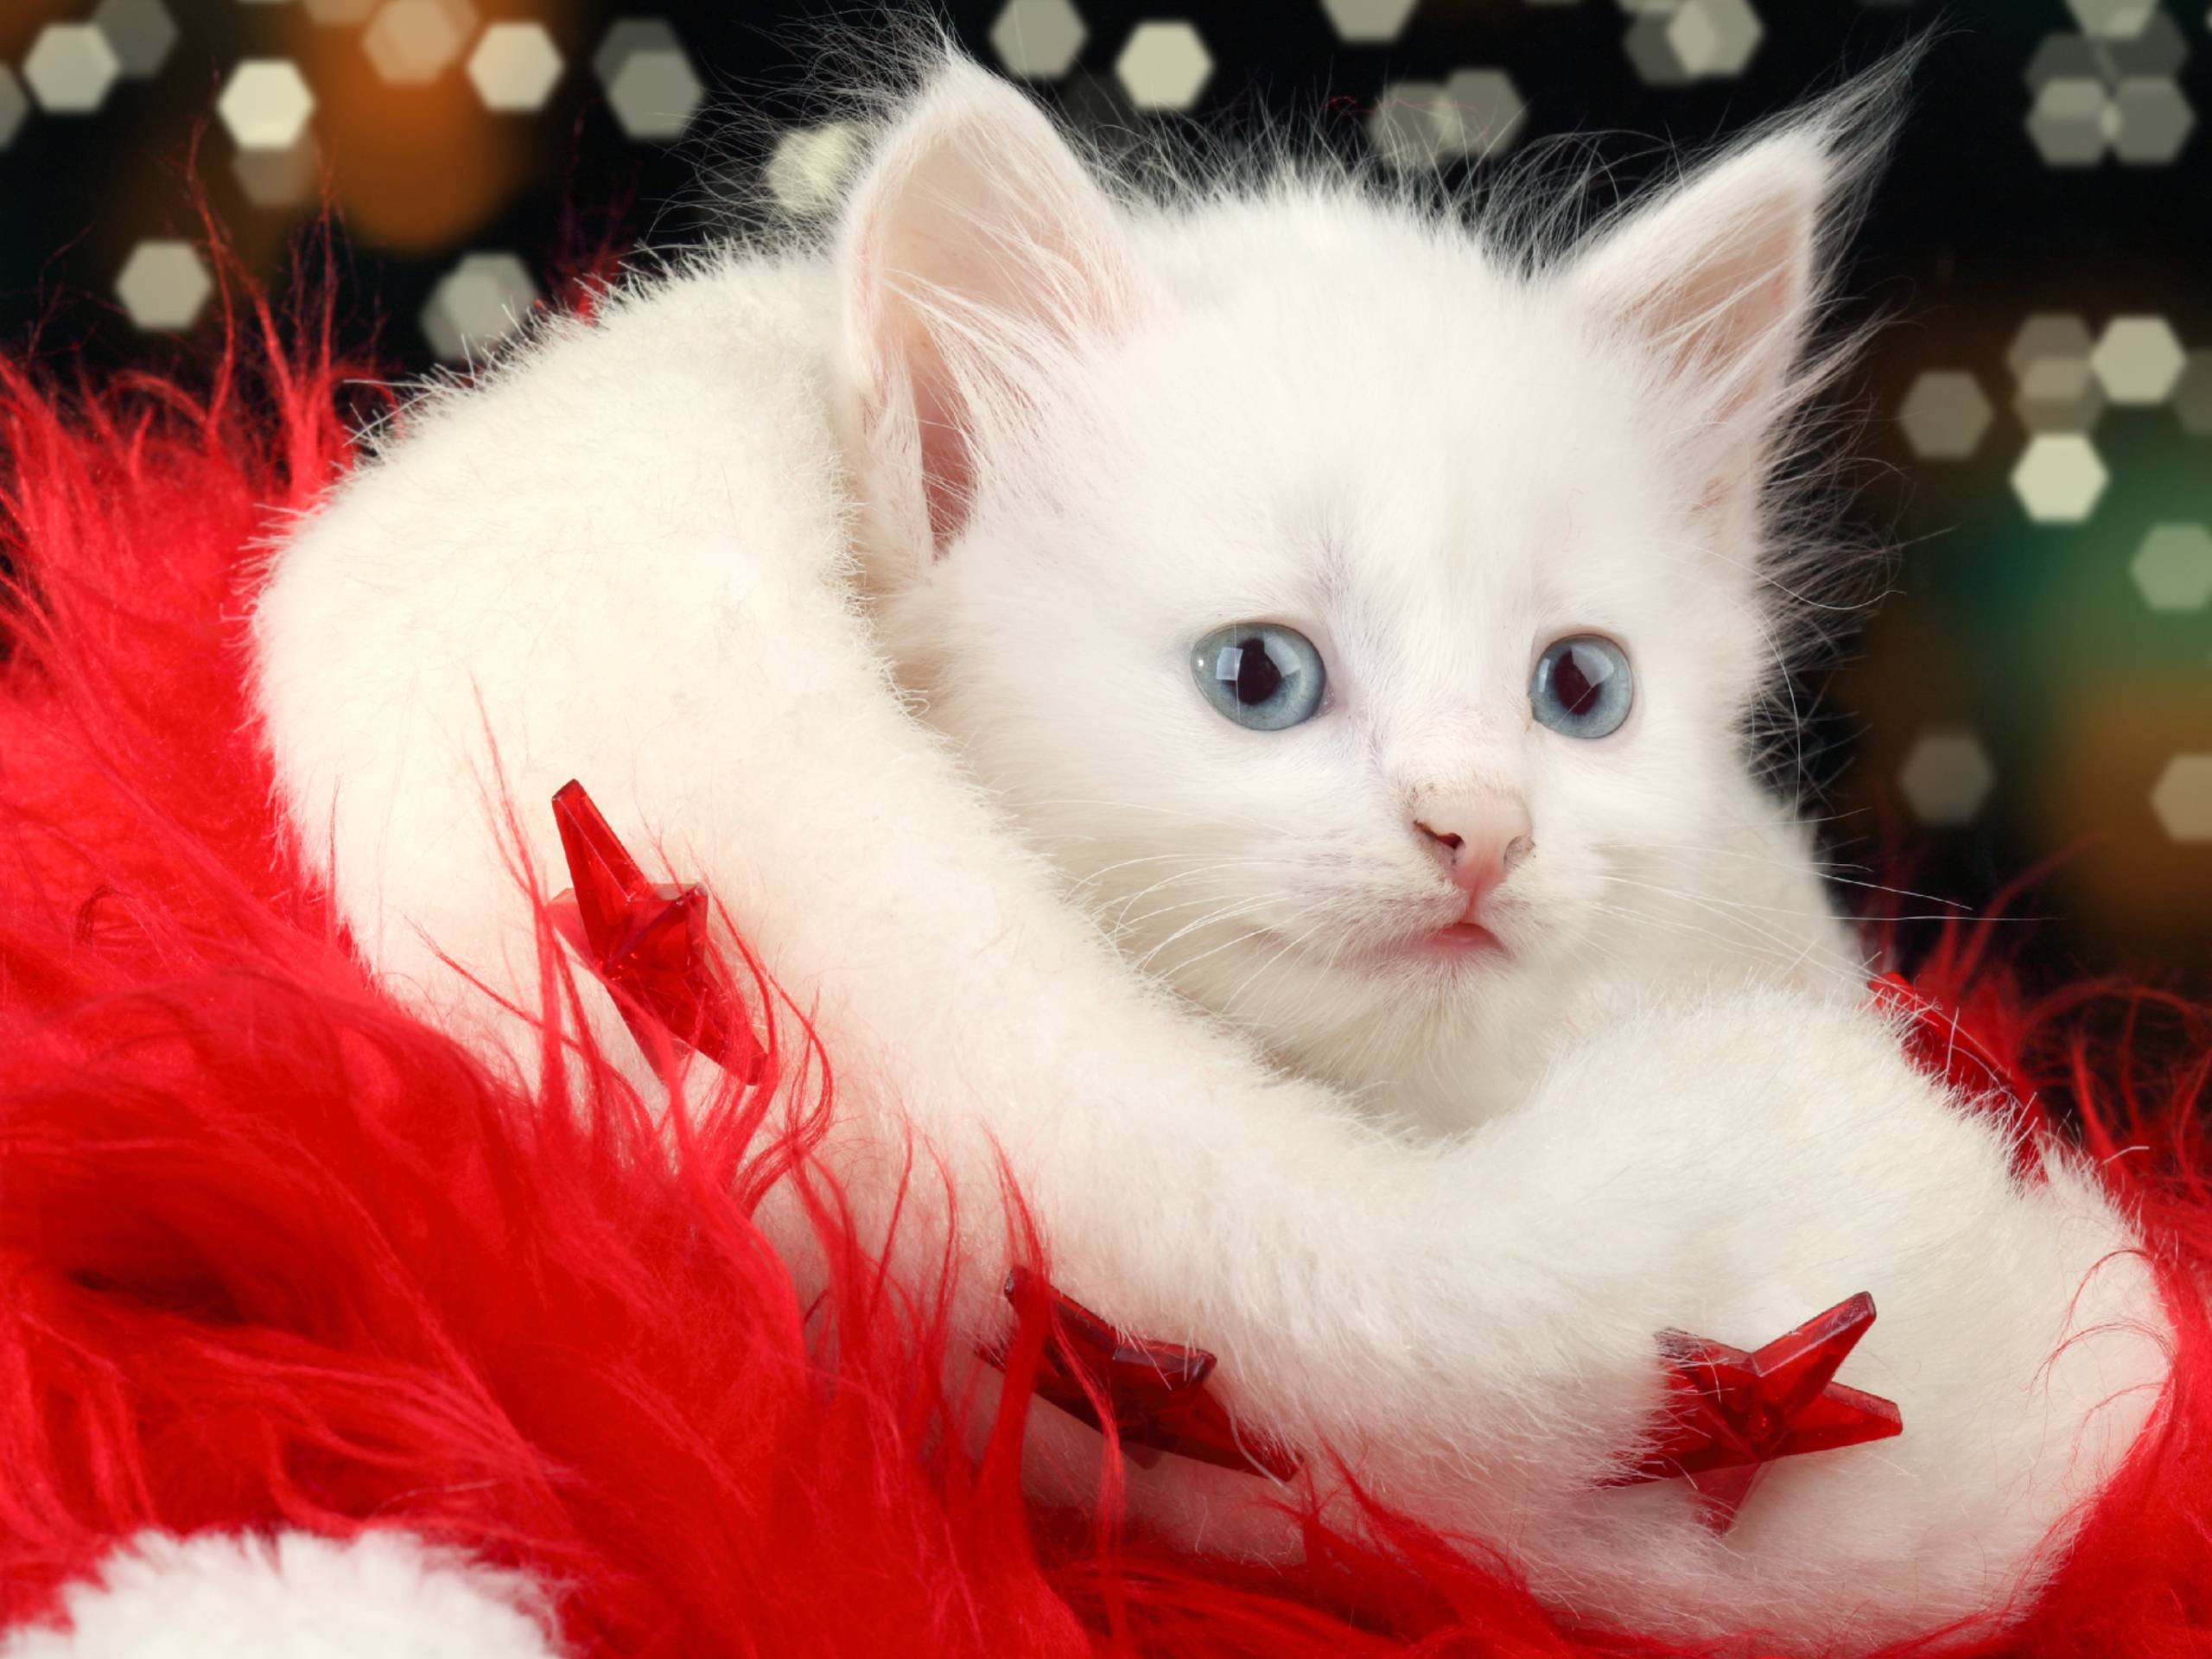 Free Download Christmas Cat Wallpapers 2560x1920 For Your Desktop Mobile Tablet Explore 71 Christmas Kitten Wallpaper Christmas Cat Wallpaper Cat Pictures For Wallpaper Kitten Wallpapers Free Download